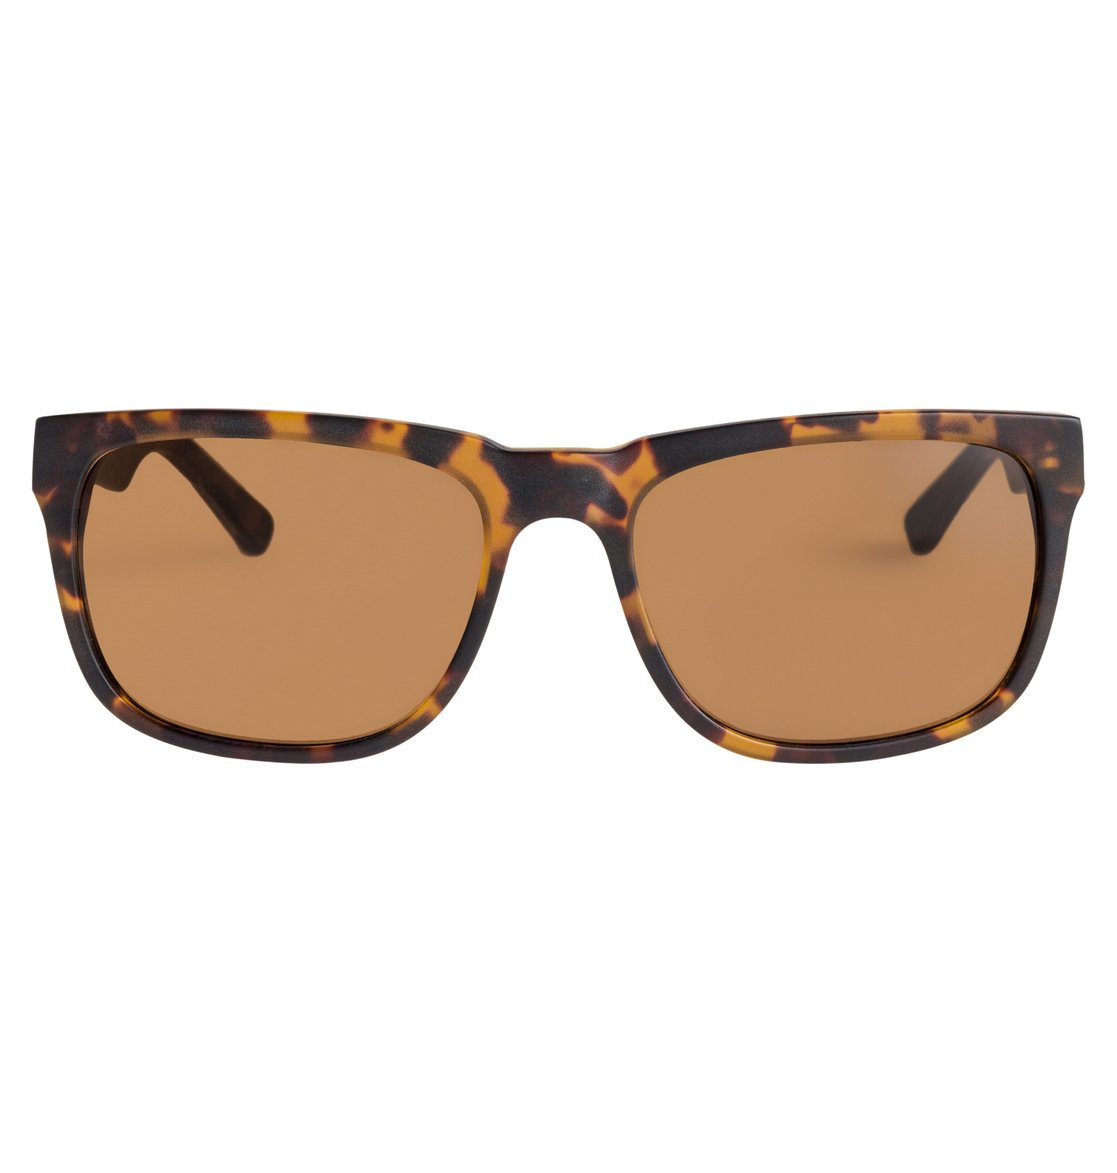 DC Shoes Sonnenbrille »DC Shades«, braun, Matte tortoise/brown